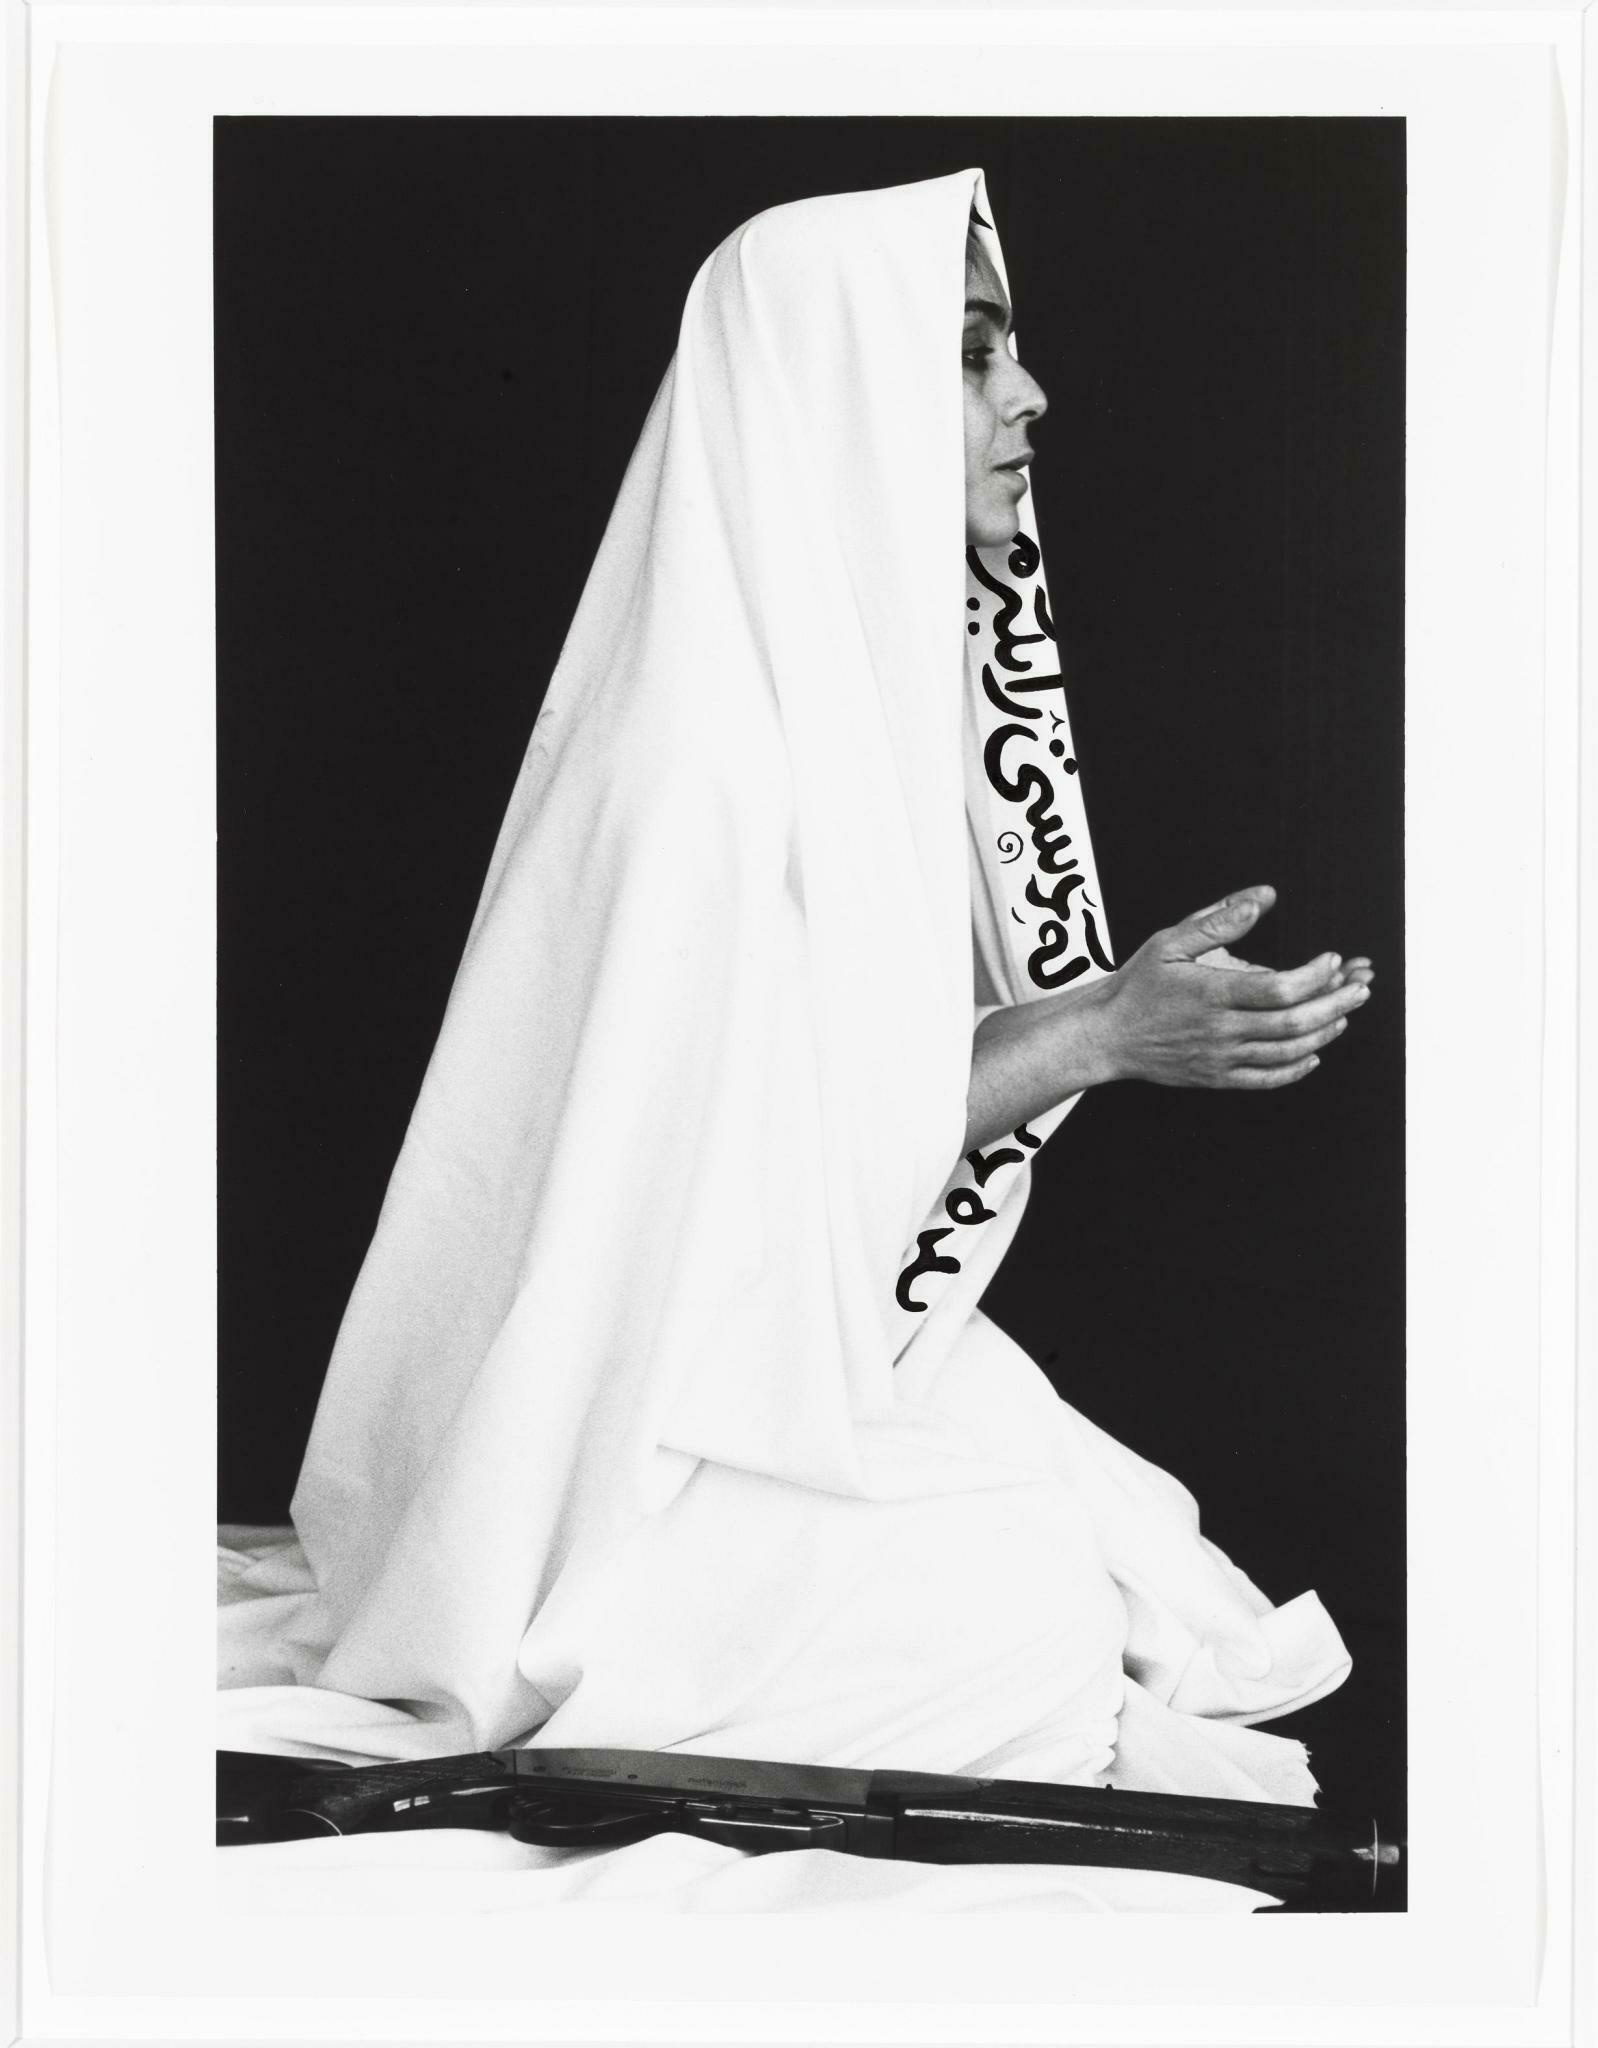 Seen from a profile view of a Iranian woman who is facing the right is wearing a white veil with Farsi text, has her hands in a prayer position, and has a gun near her bended knees